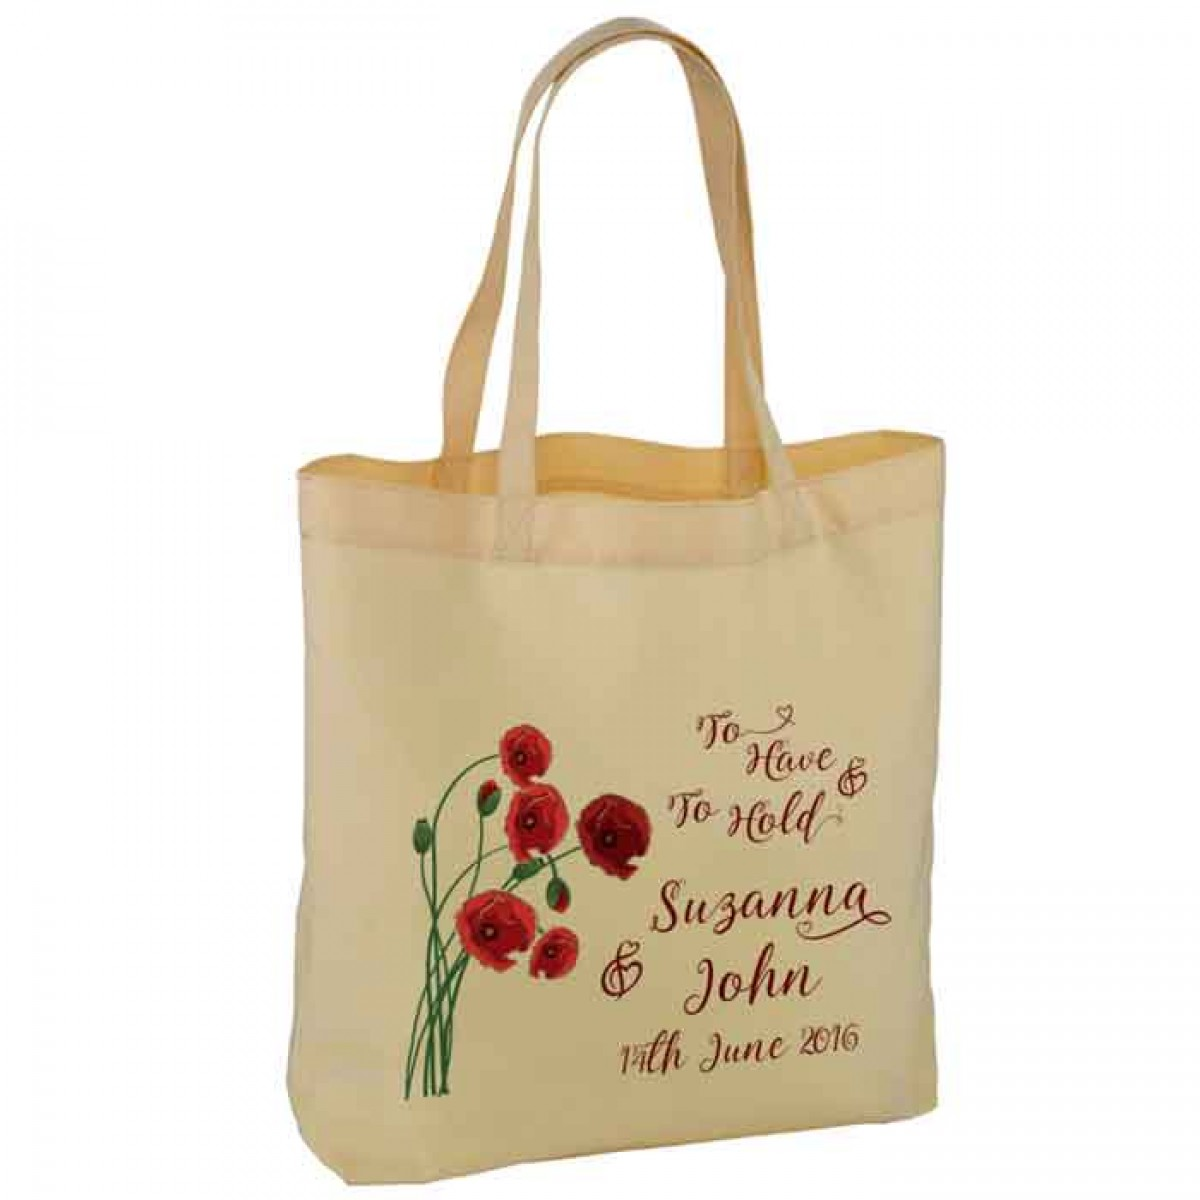 cce7b8c3073 Poppy Design Personalised Wedding Favour Cotton Tote Bag ...